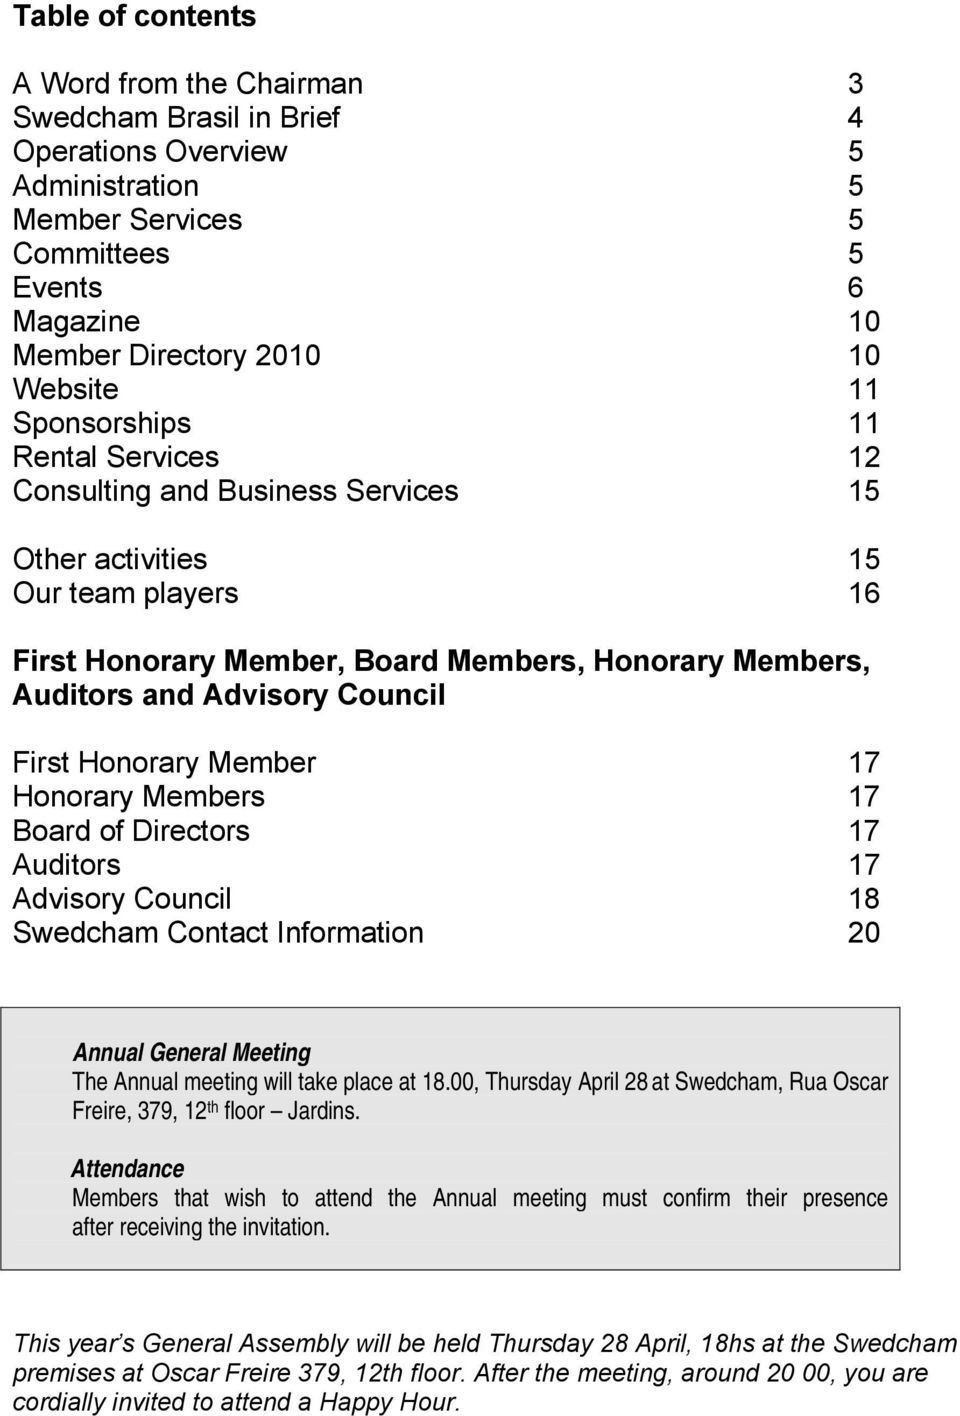 First Honorary Member 17 Honorary Members 17 Board of Directors 17 Auditors 17 Advisory Council 18 Swedcham Contact Information 20 Annual General Meeting The Annual meeting will take place at 18.